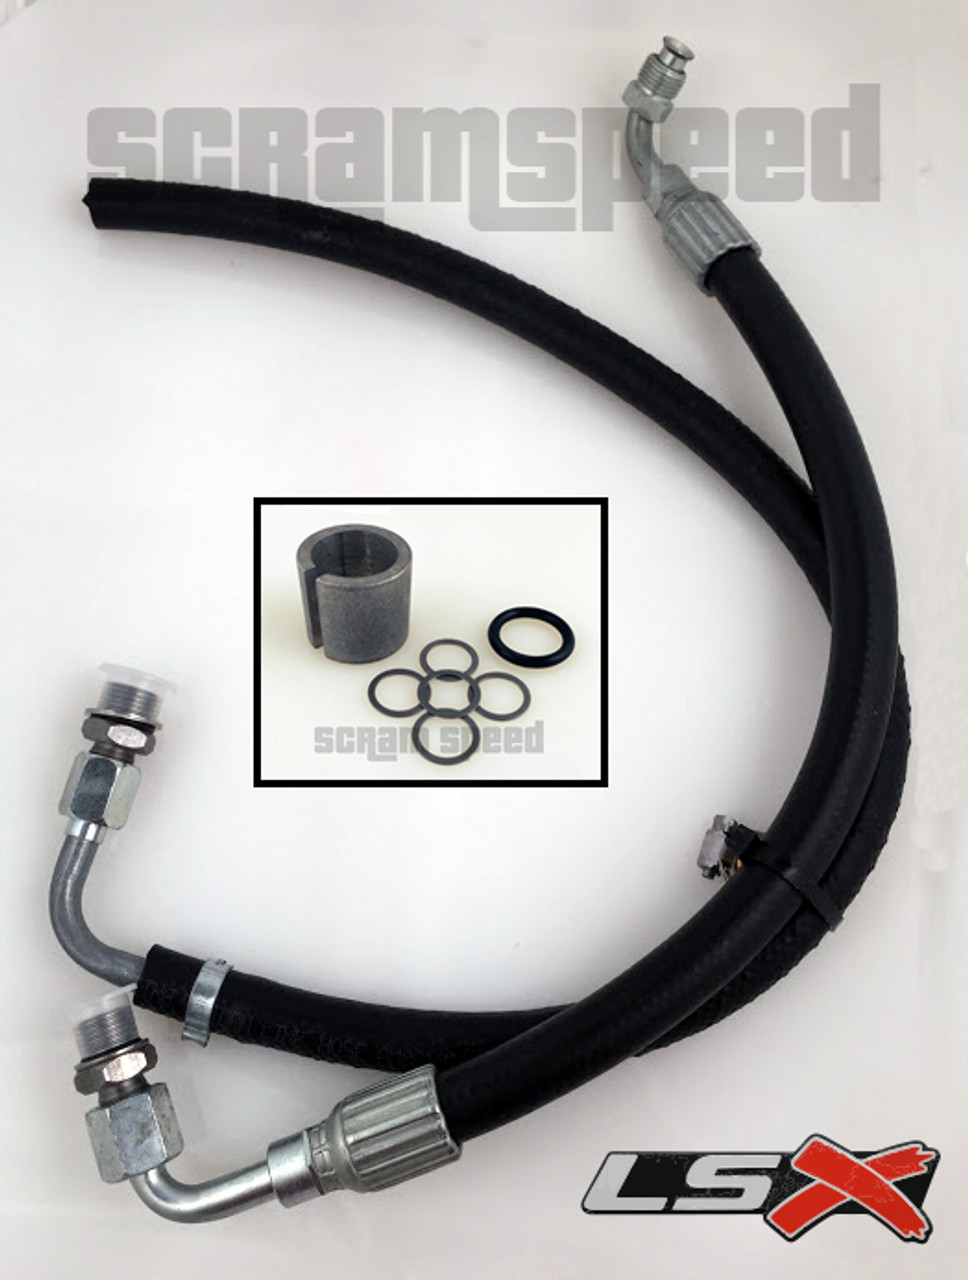 79-97 Mustang LS Swap Power Steering hose and pressure reduction kit LSX  LS1 LS6